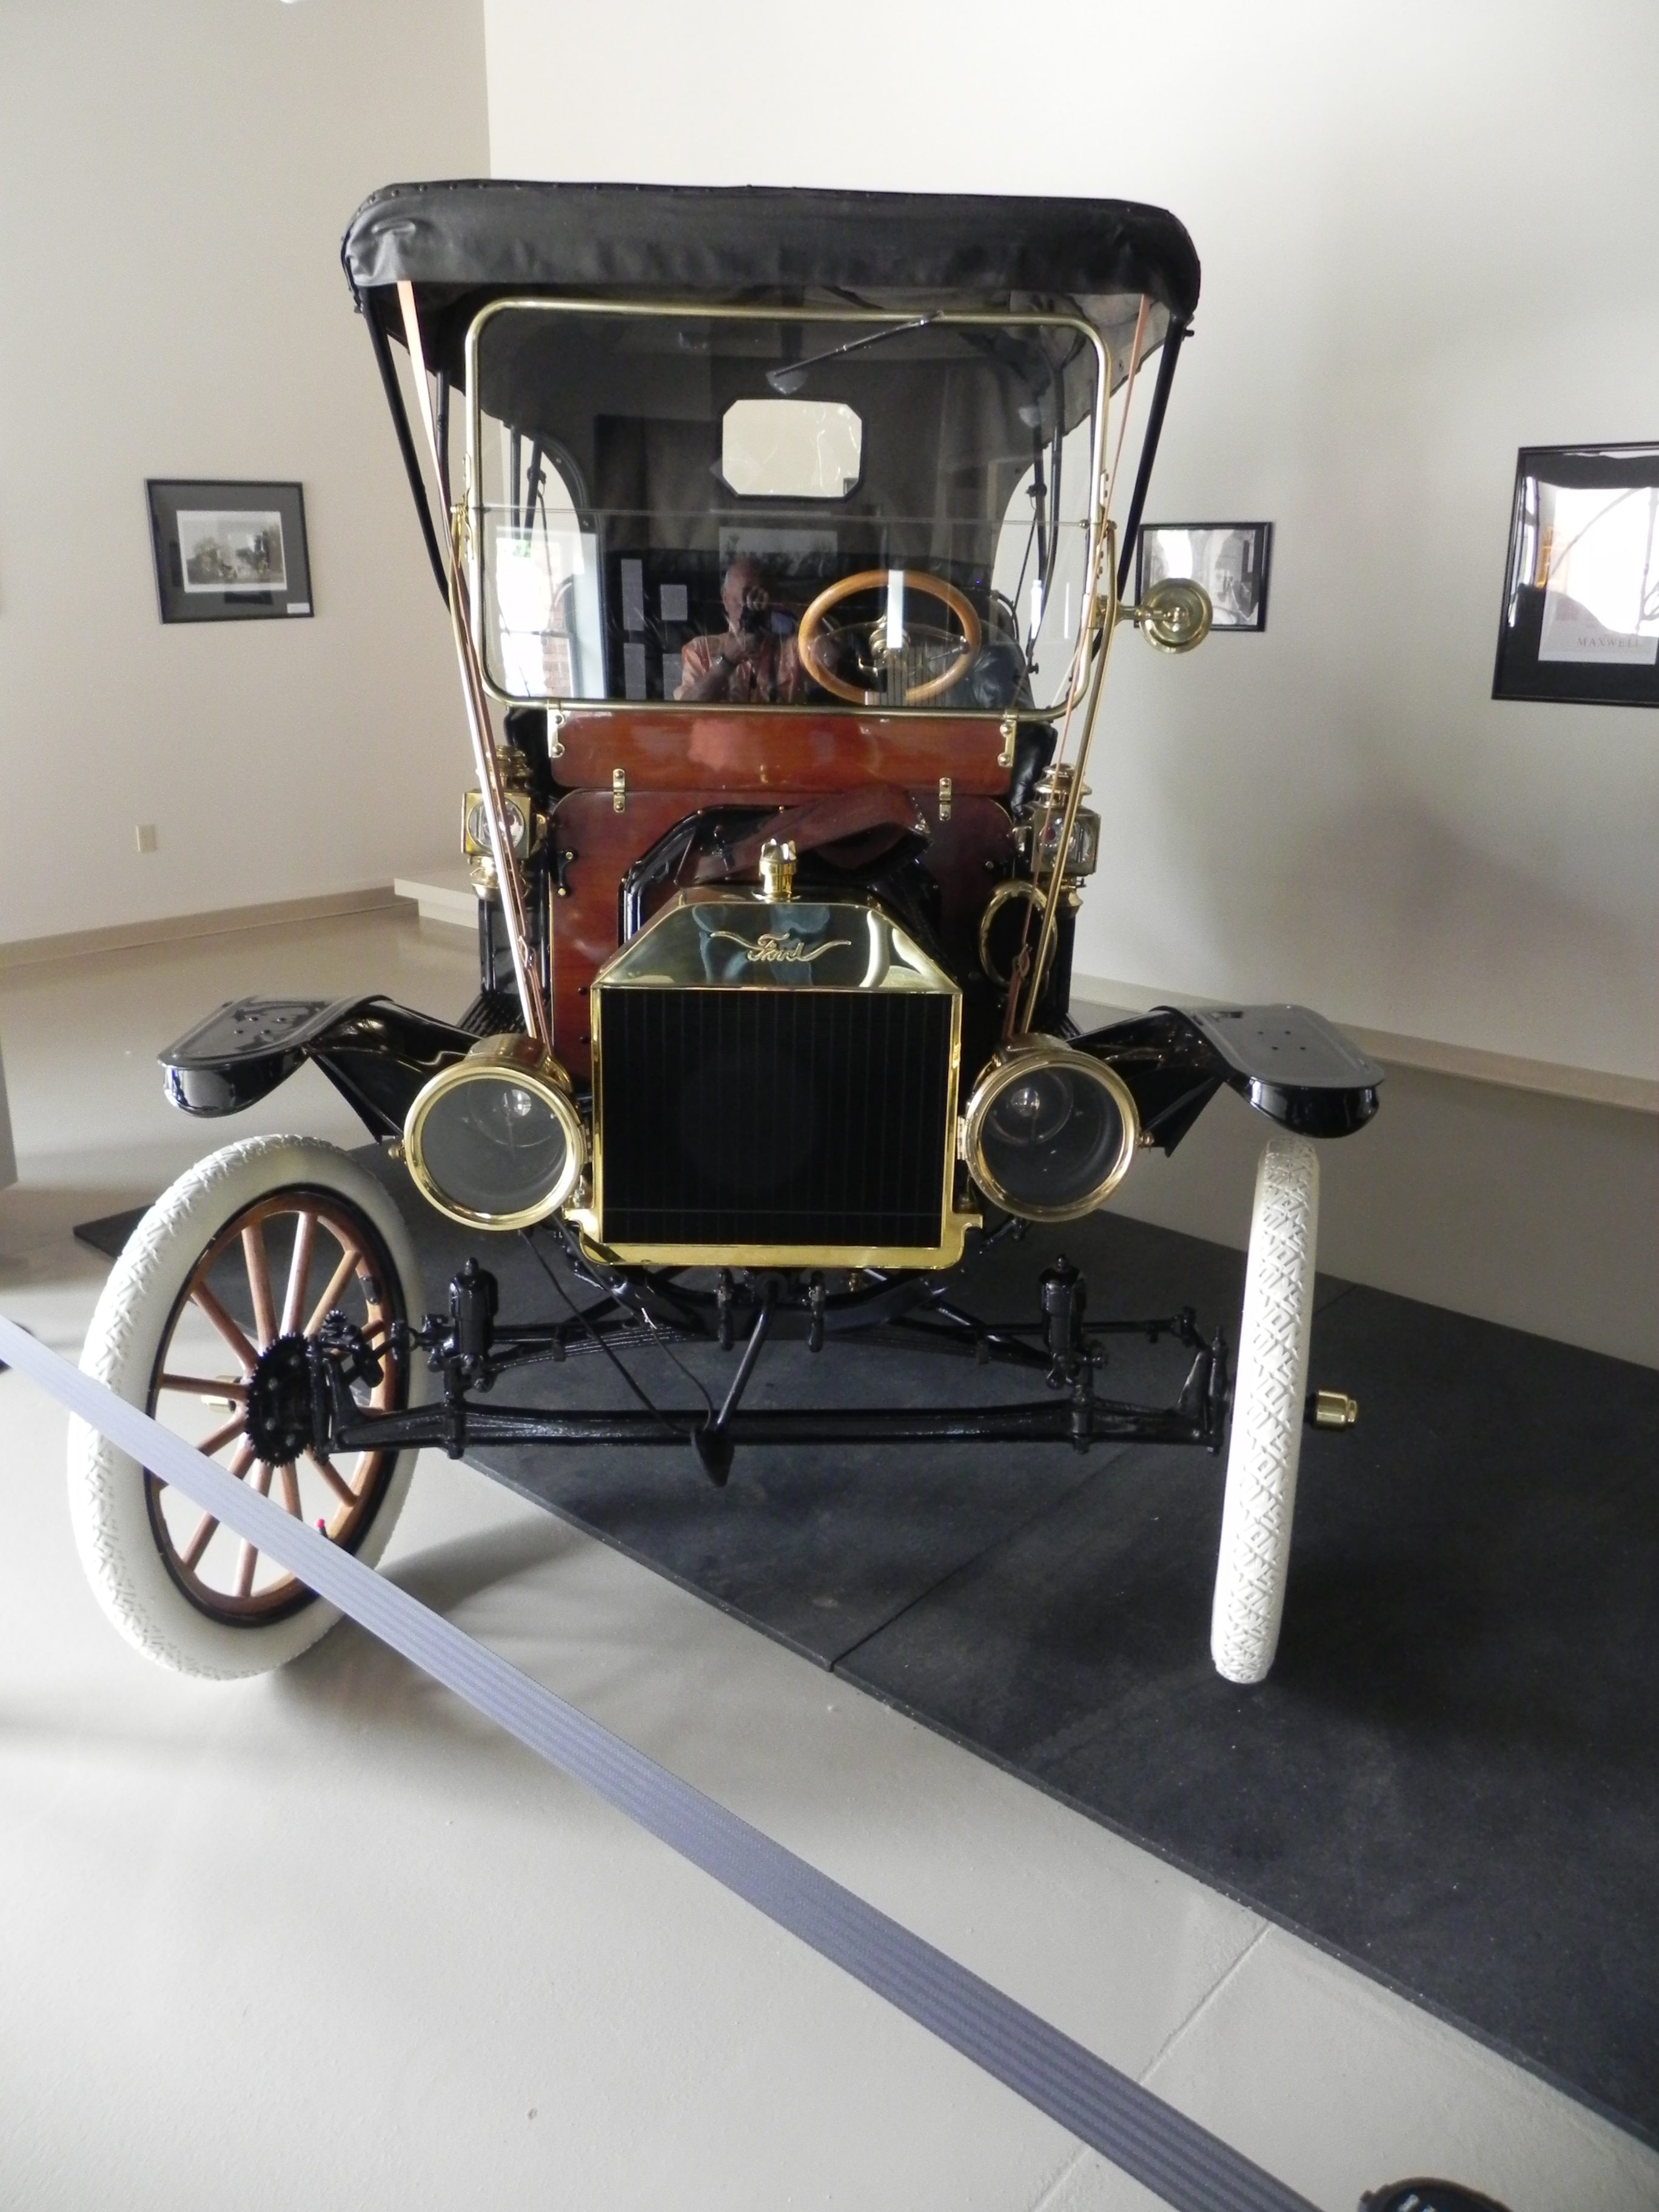 Why a 1910 Model T is in a railway museum.